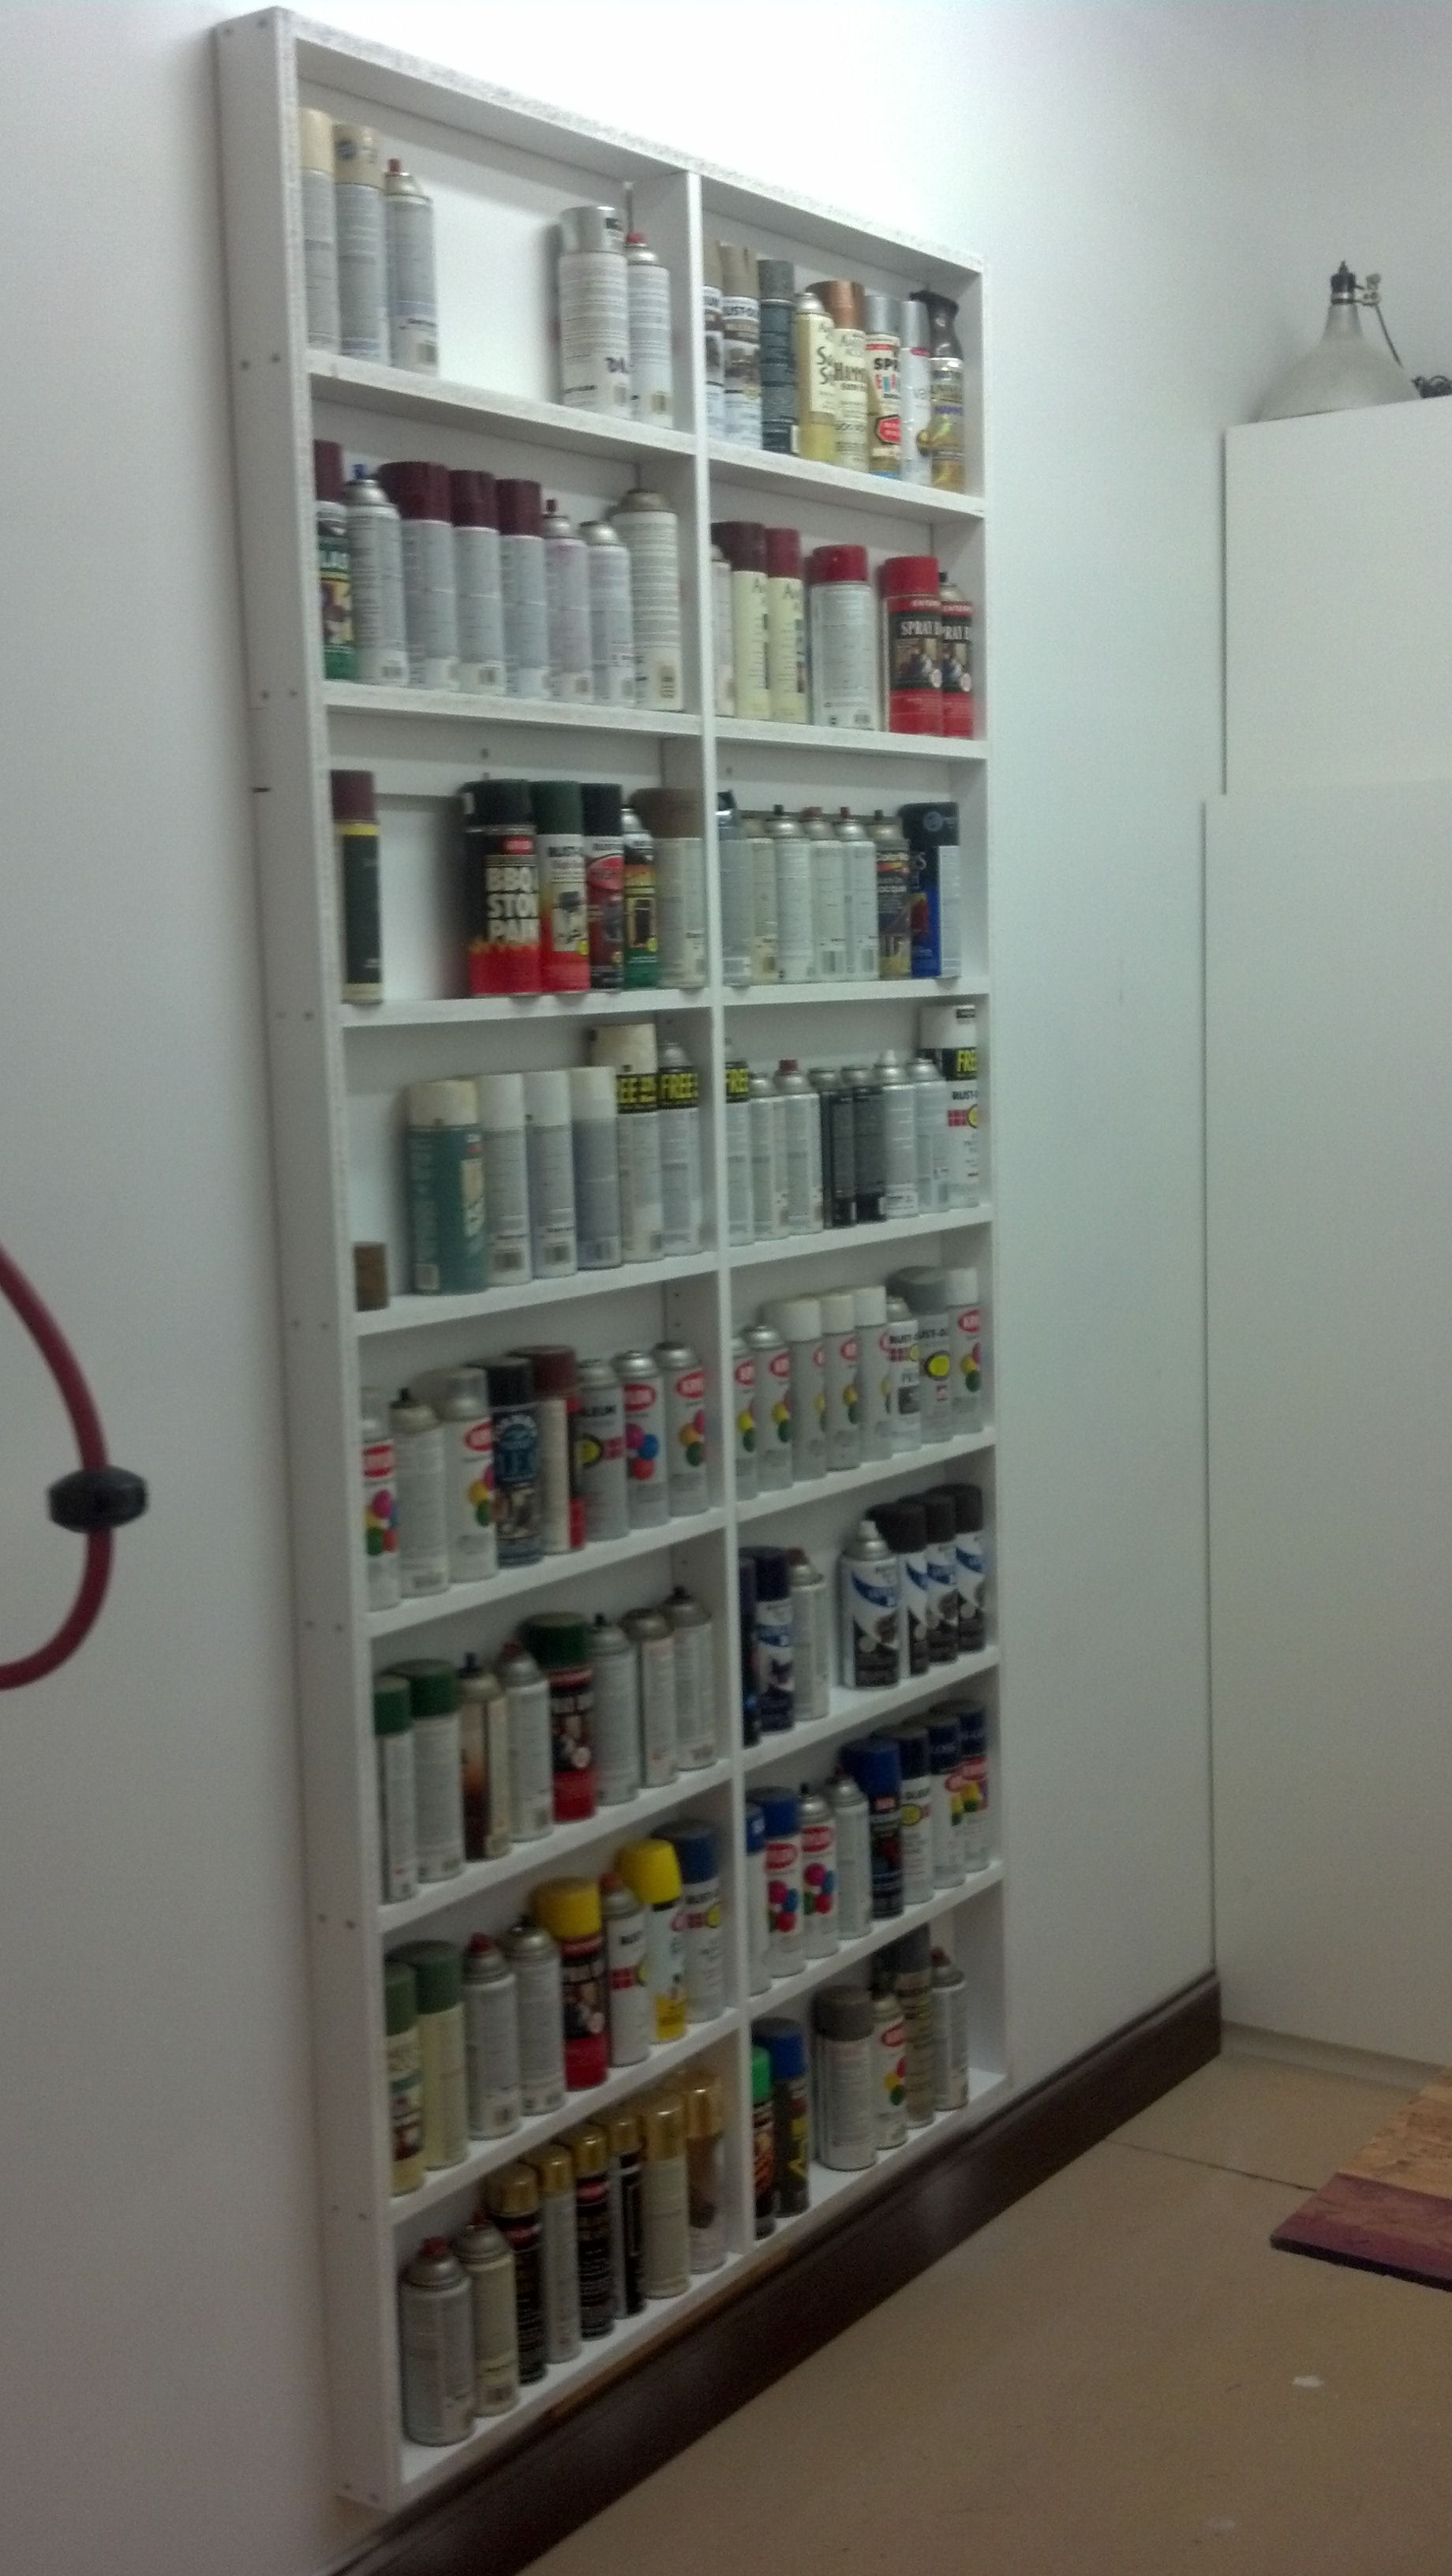 I was filling up my storage cabinets with all the spray paint cans I